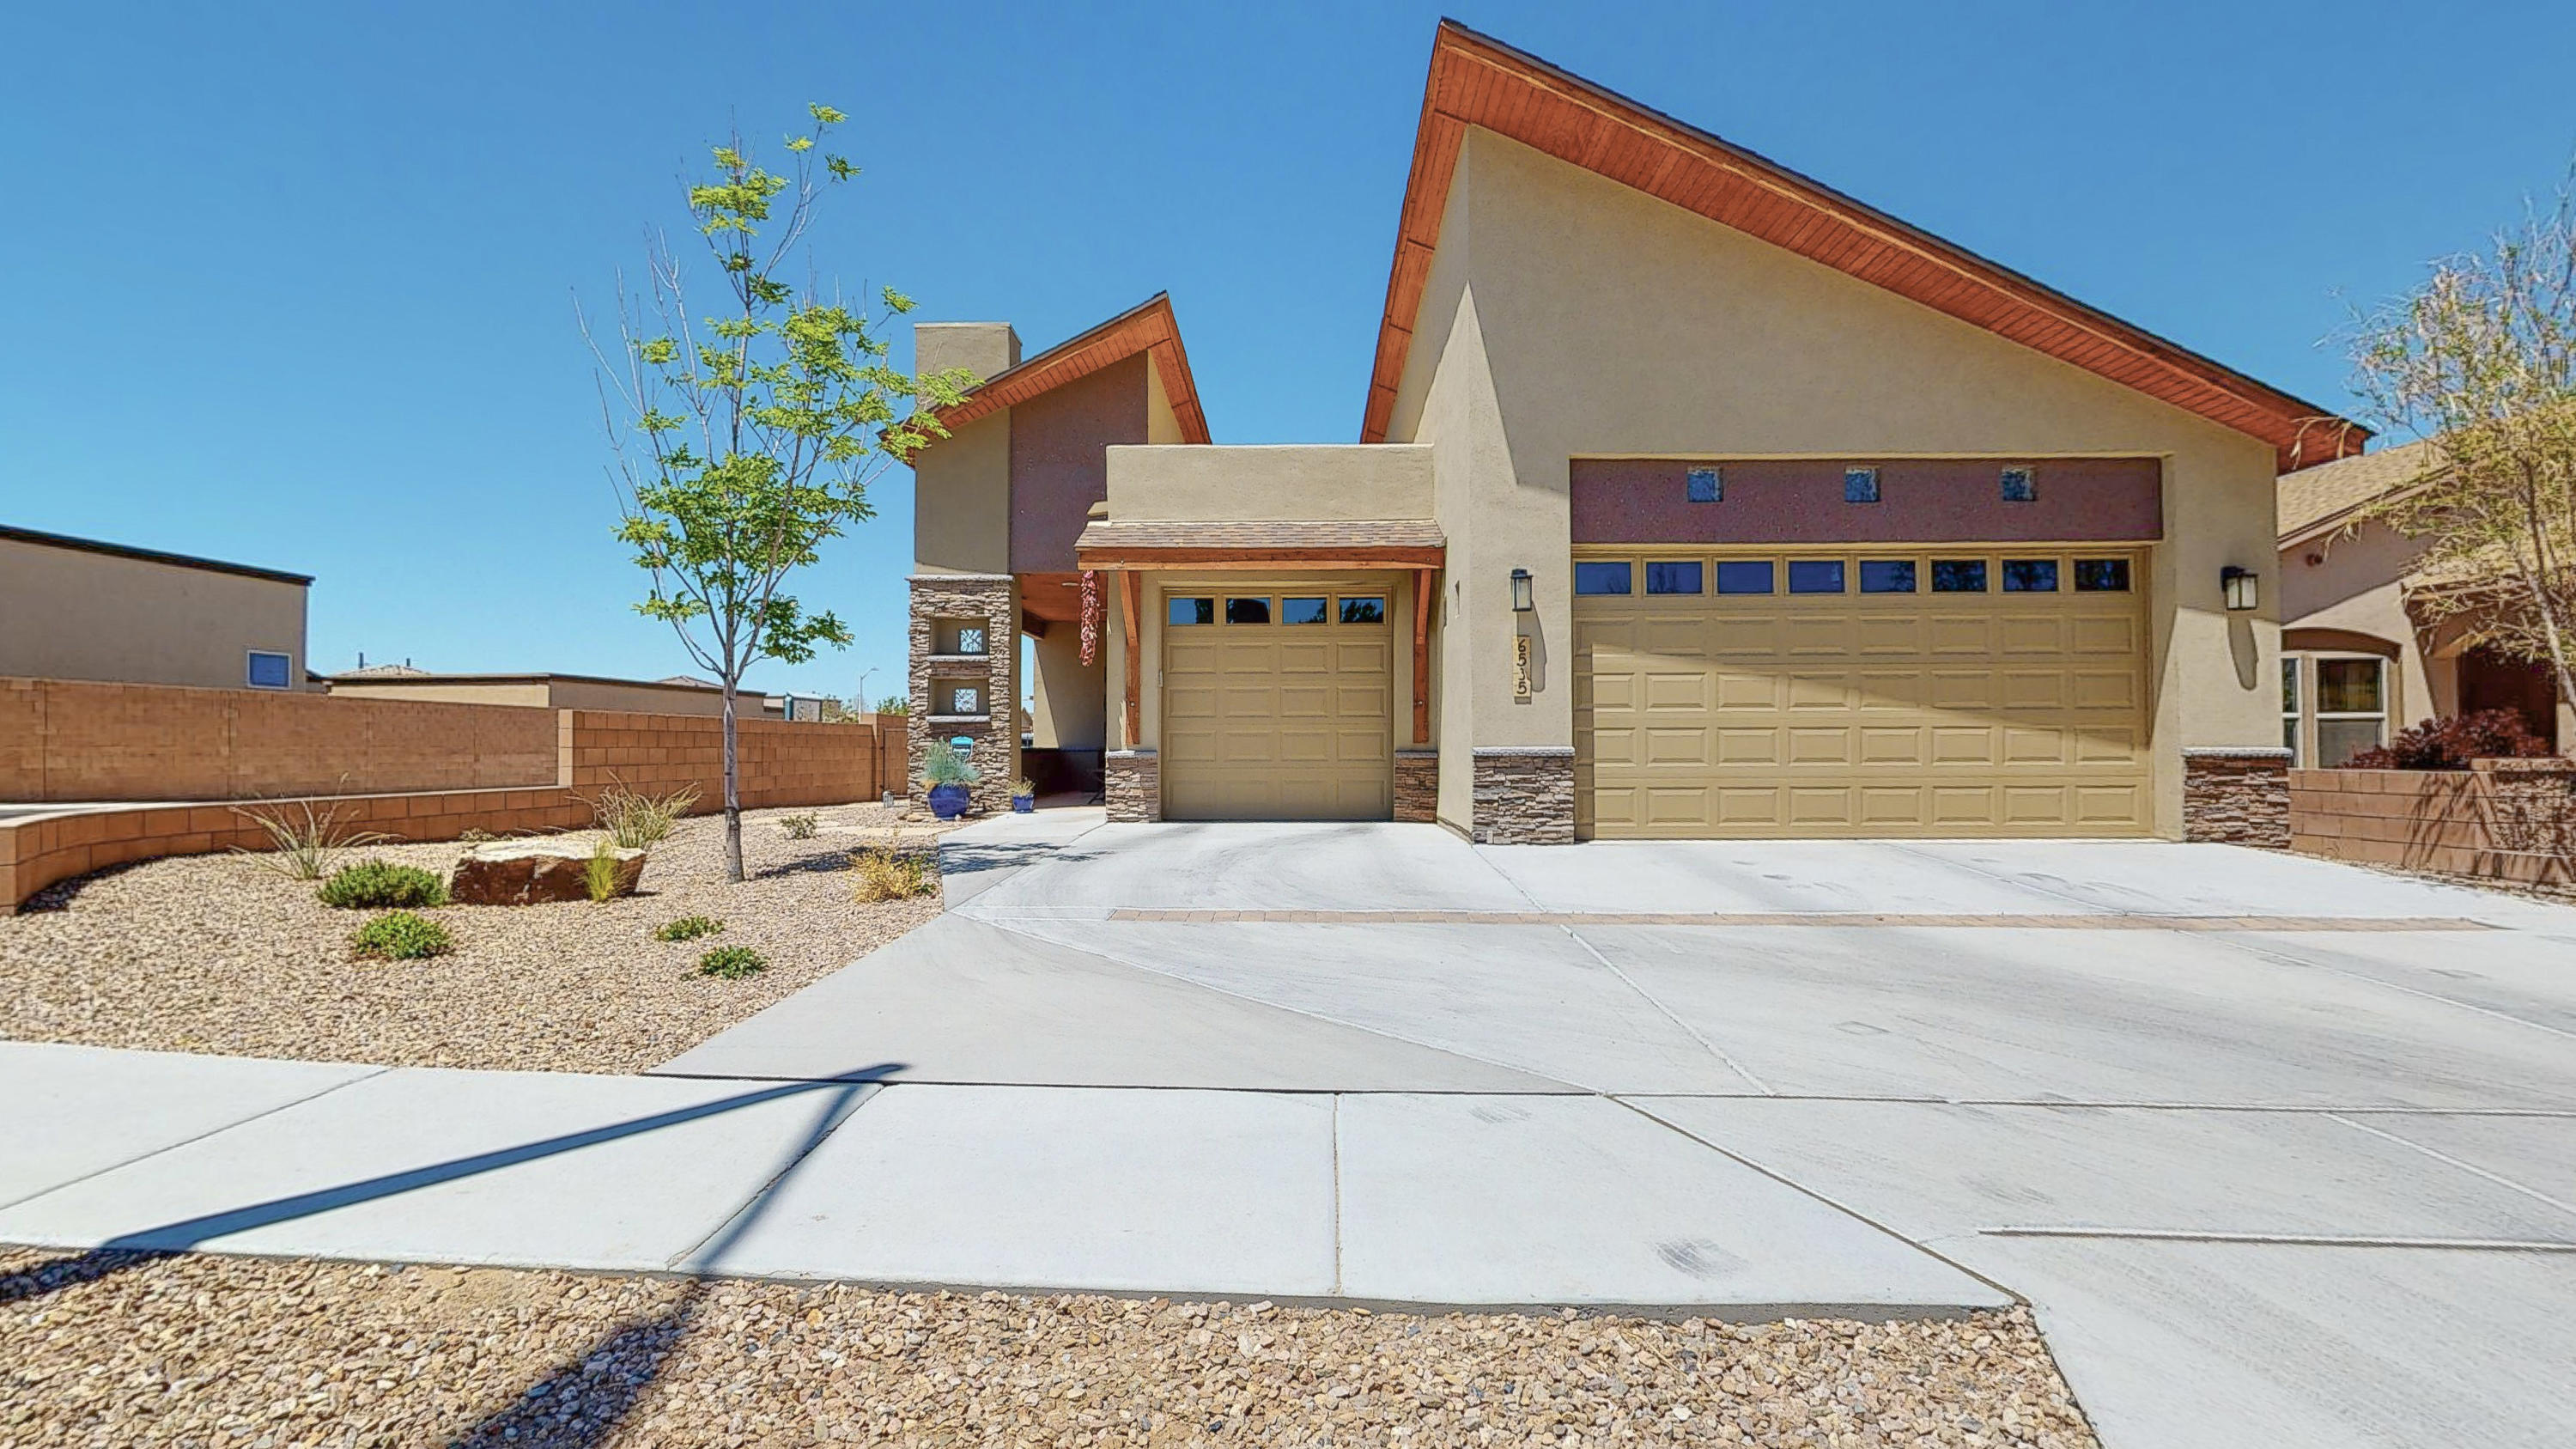 This contemporary southwest style home has an open floor plan ideal for entertaining. Gorgeous cabinets throughout. Enormous walk in closet in the master bedroom. Soft release cabinets in the kitchen. New granite counter tops in the kitchen and bathrooms. New wood tile throughout the living areas. Interior was recently painted. New doorknobs and lighting fixtures. Backyard professionally landscaped with drop system and the custom viga in the backyard has retractable shades. Driveway was extended to make it easier to pull out of the 3 car garage. Green certified home with energy star appliances! Flat and shingle roof was replaced last year as well as the gutters on the back of the house. This house is turn-key ready! Don't wait, view it today! See full list of upgrades attached.